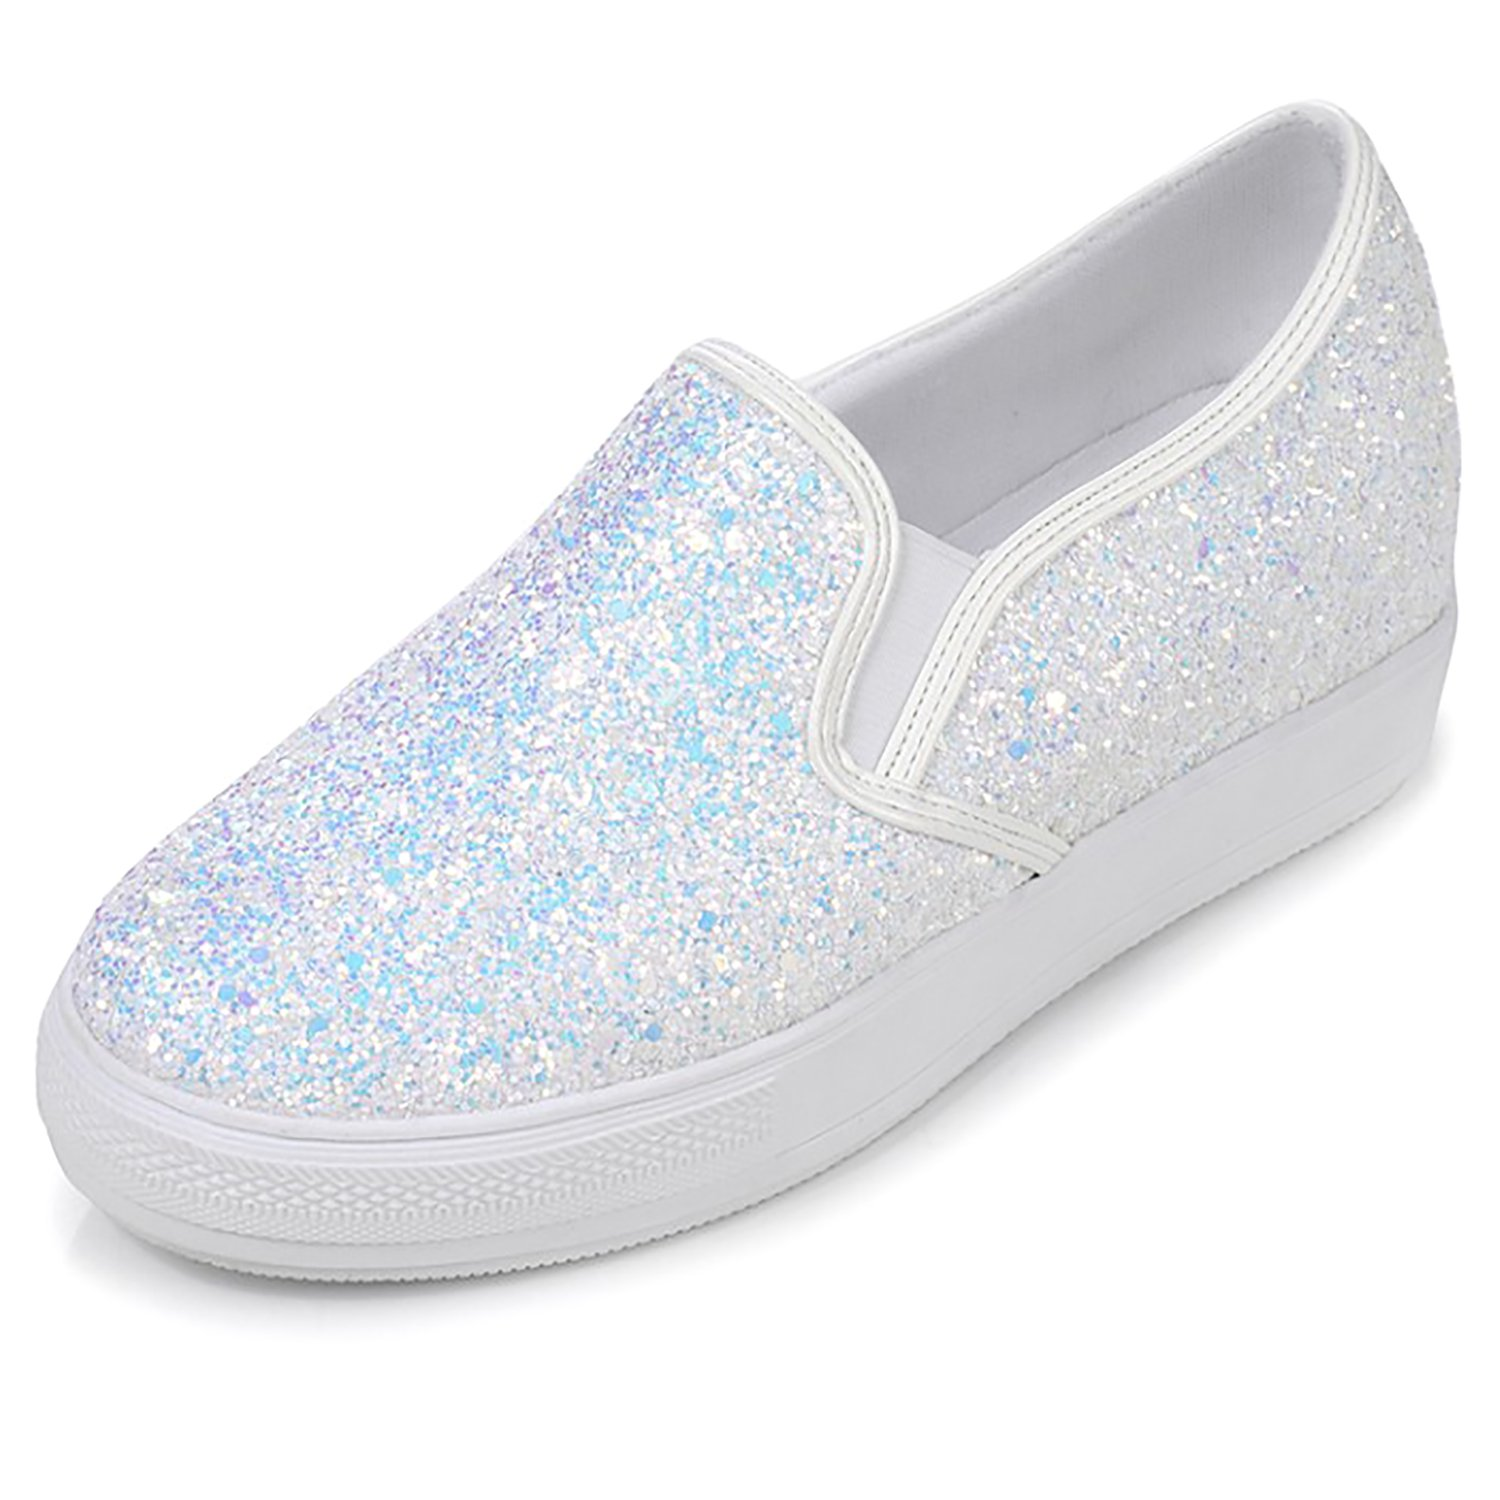 Odema Womens Glitter Sparkly Sequin Platform Sneakers Slip on Shoes Loafers